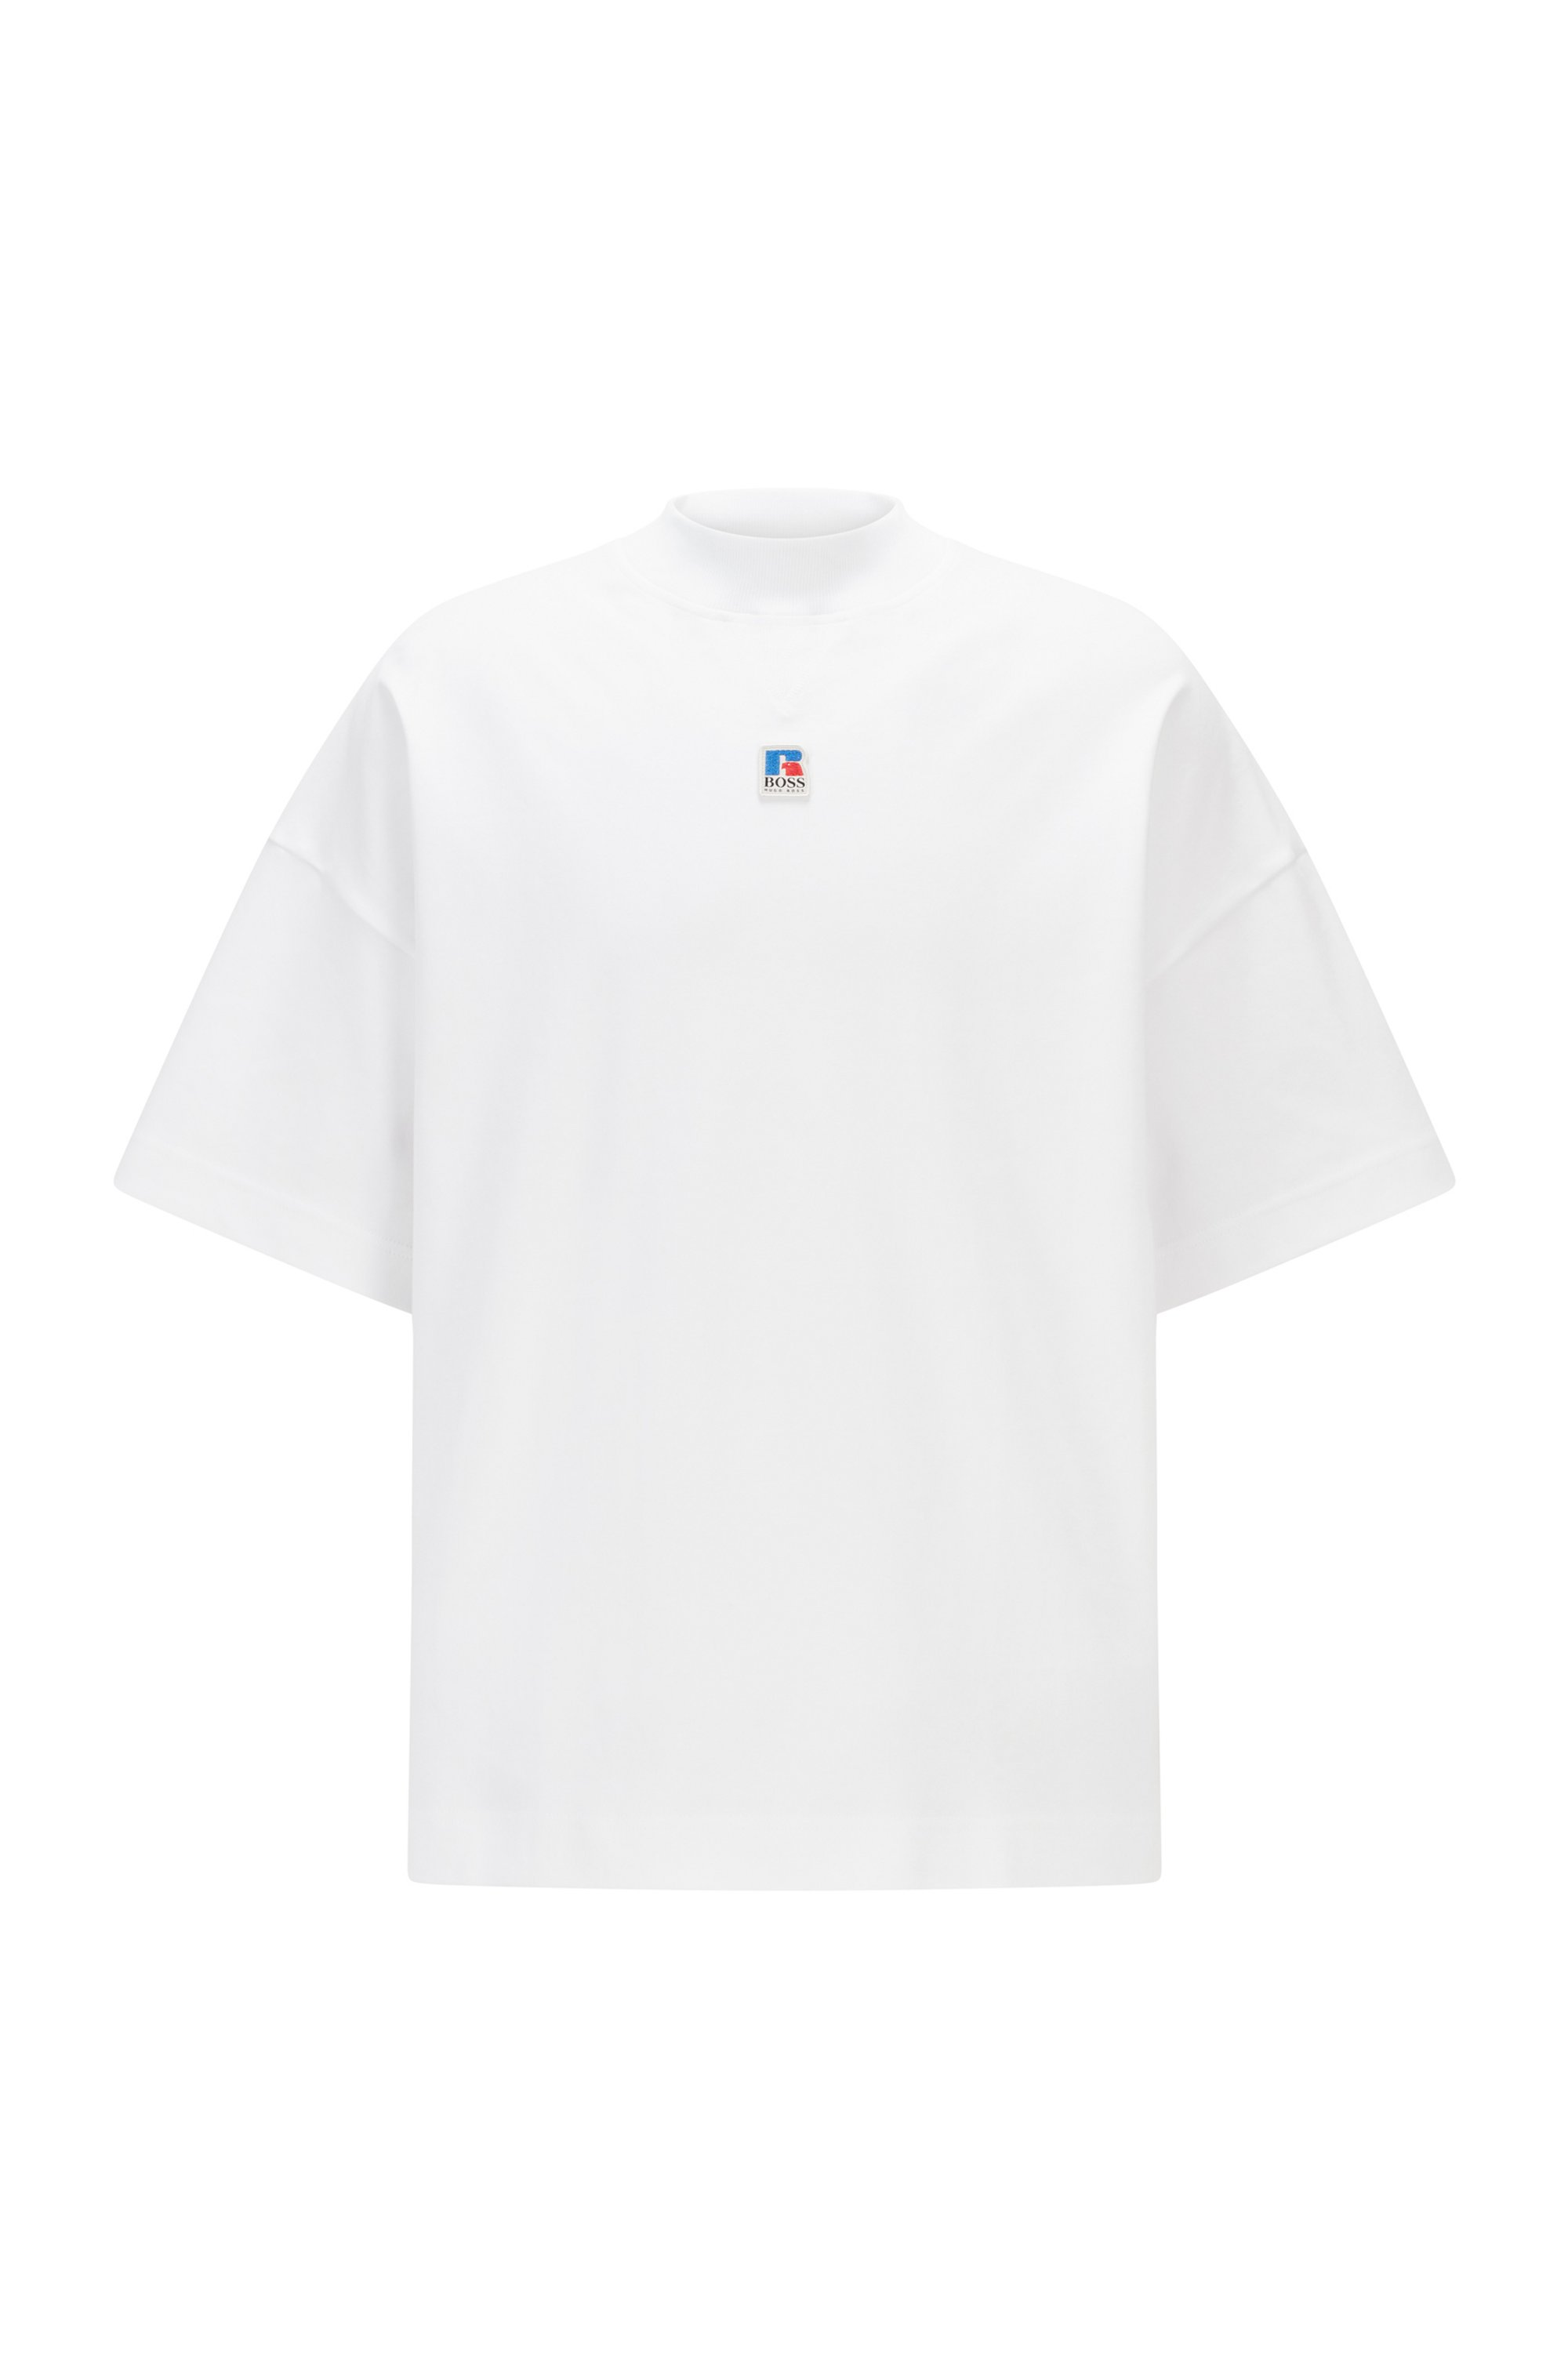 Relaxed-fit unisex T-shirt in organic cotton with exclusive logo, White